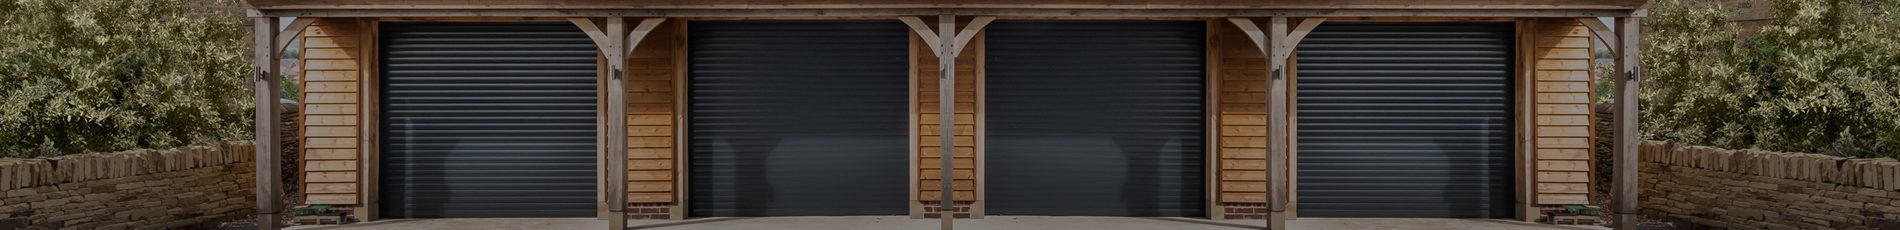 Roller Garage Doors Wickford